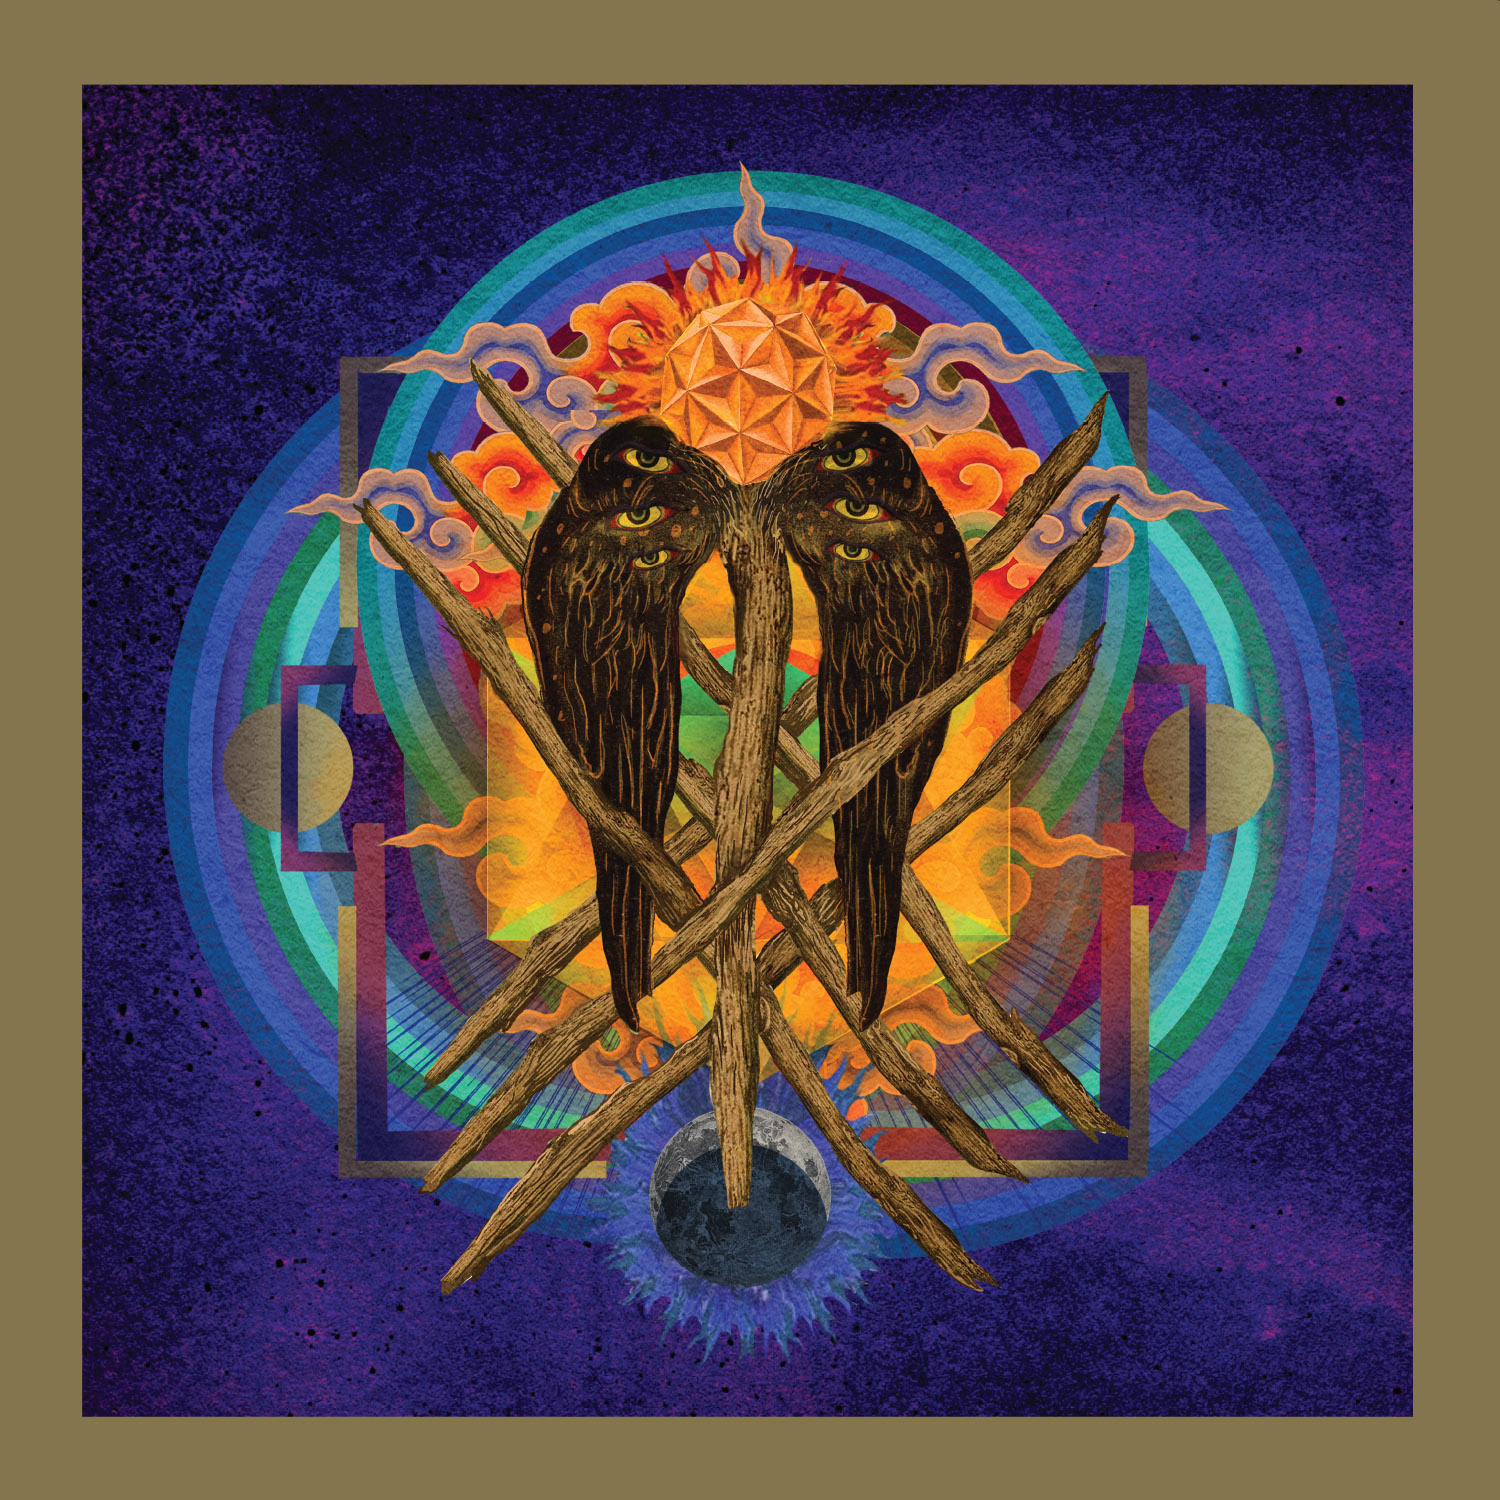 Our Raw Heart - RELEASE DATE: JUNE 8th 2018RELAPSE RECORDSA brilliant musical progression in the YOB continuum, Our Raw Heart is truly the band's finest work to date and the apex achievement of what heavy music can accomplish. Across seven riveting compositions of enormous volume and pensive, transcendental beauty, YOB bleed out their own organic universe of ultimate doom.Our Raw Heart was co-produced by the band and longtime collaborator Billy Barnett at Gung Ho Studio in Eugene, Ore., with mastering handled by Heba Kadry (The Mars Volta, Diamanda Galas, Slowdive).